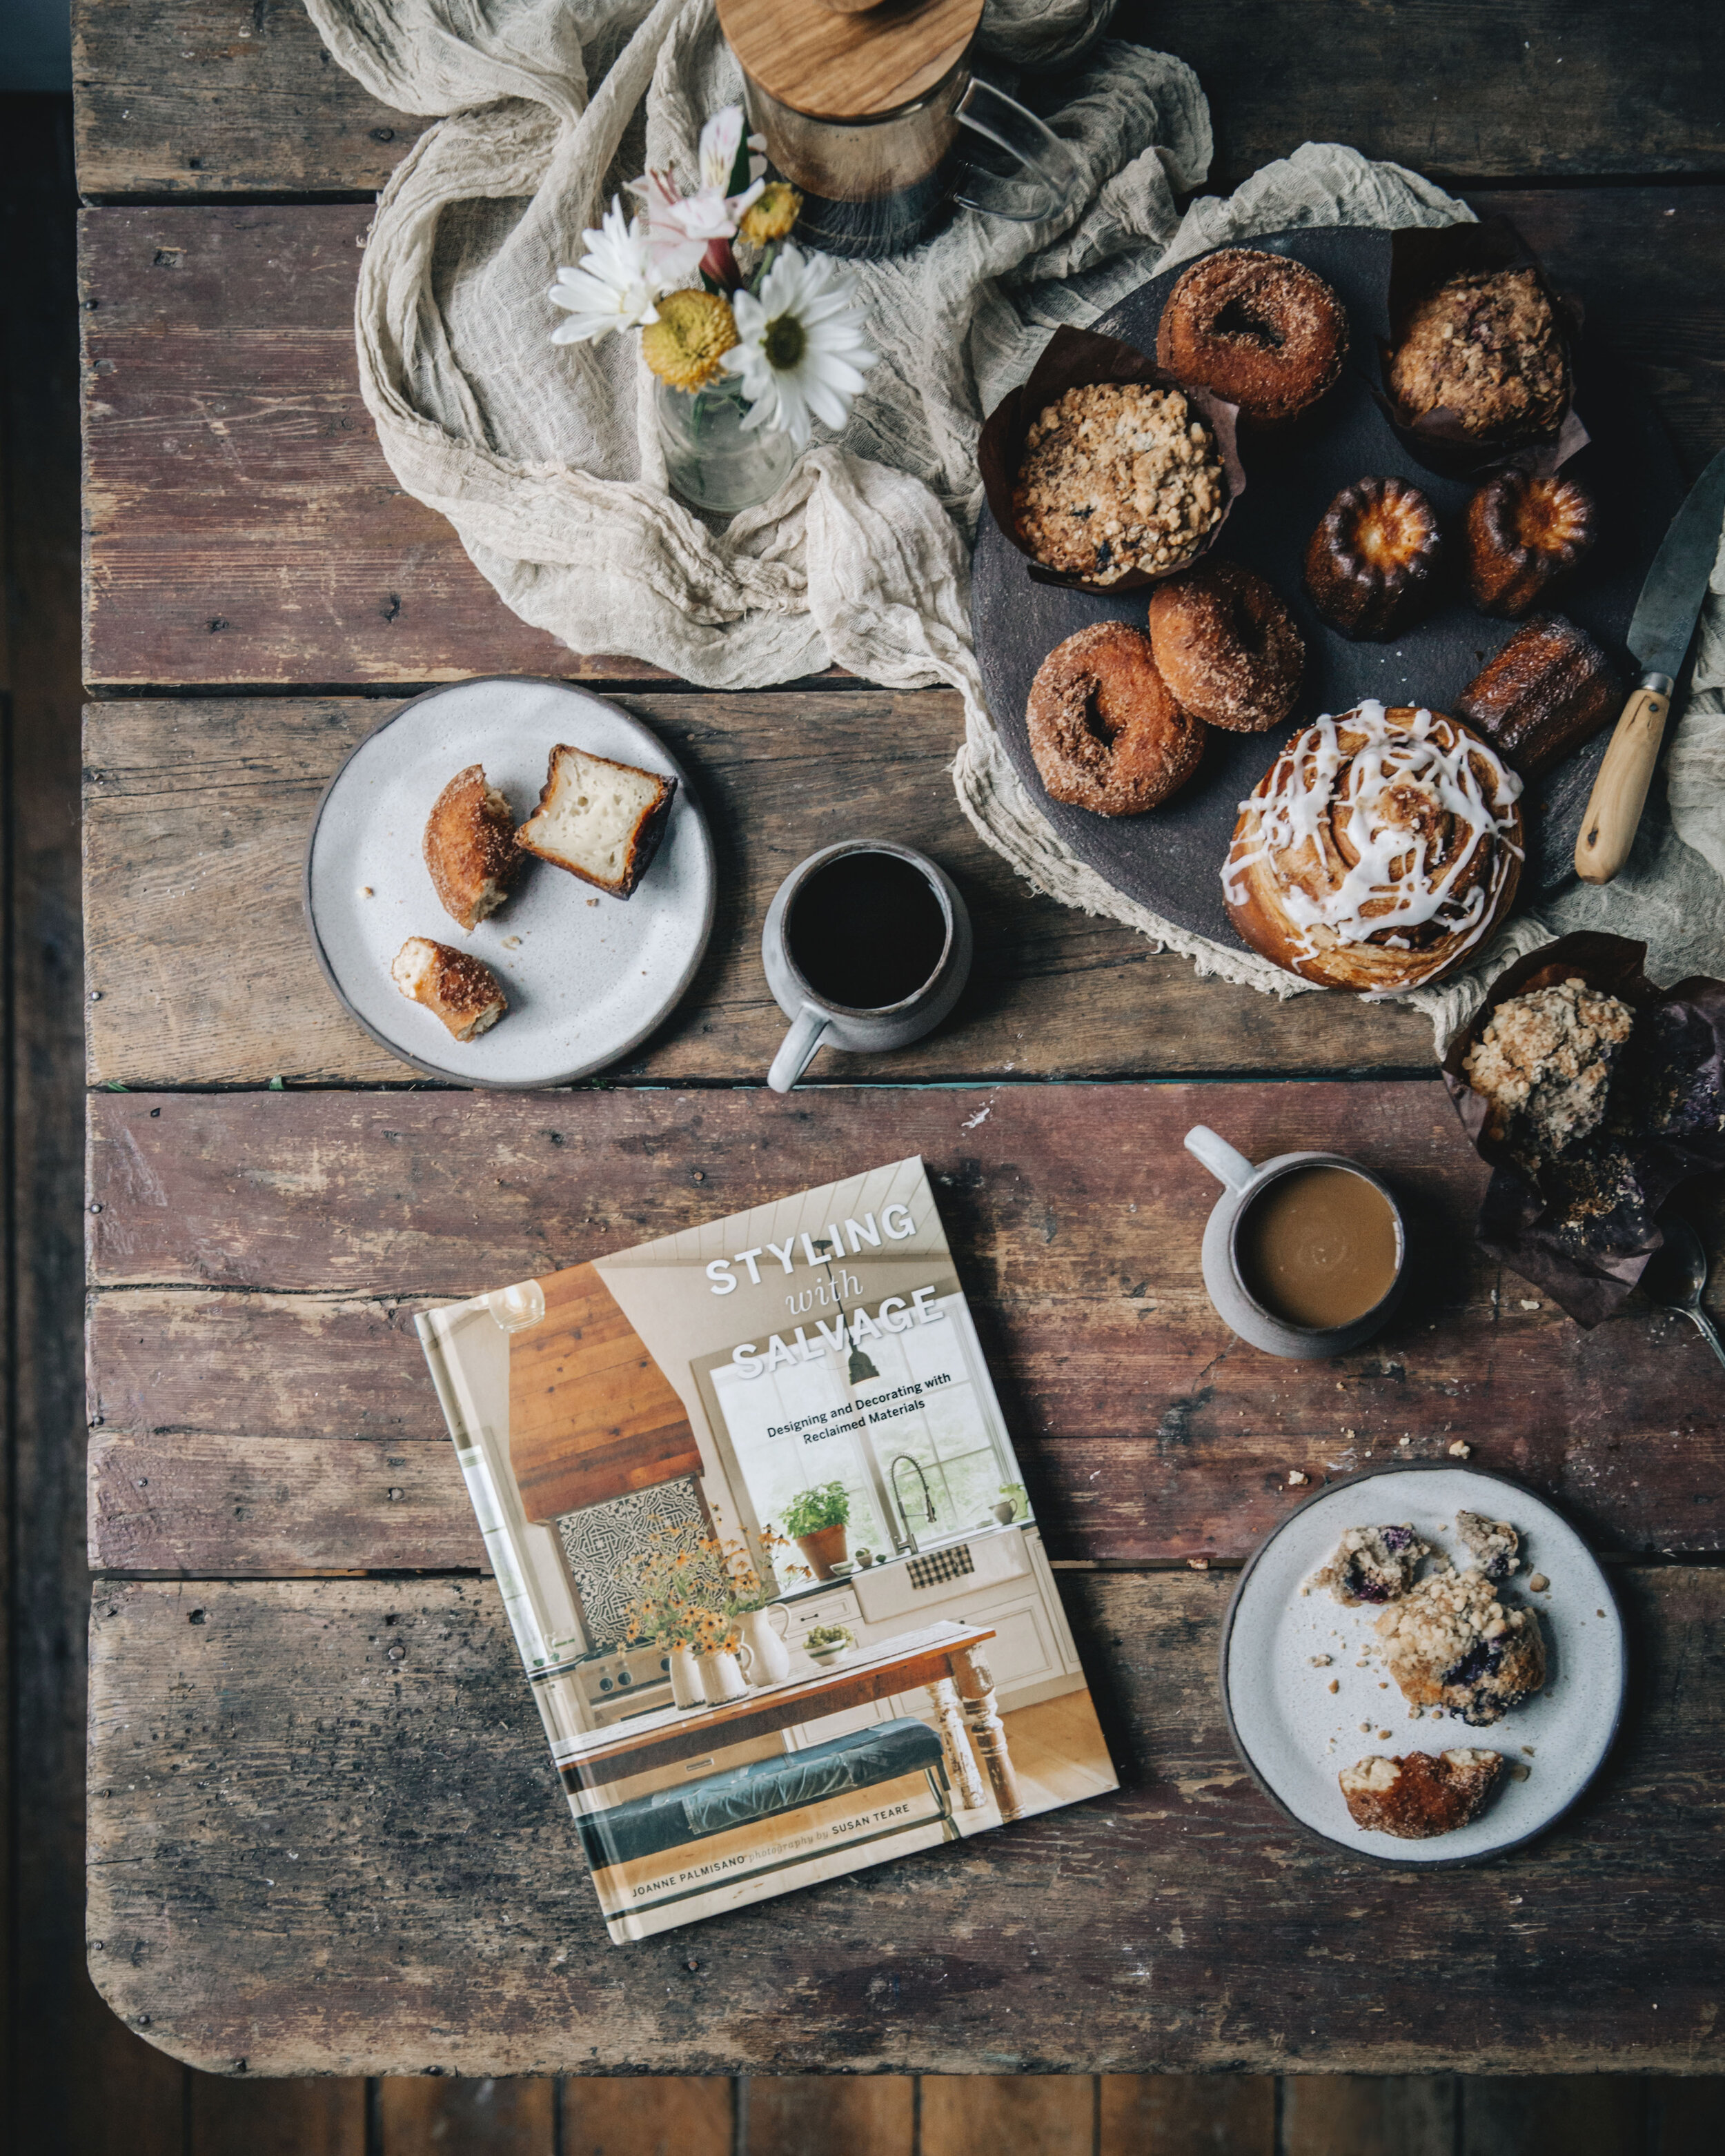 Carey Nershi took this amazing picture of my latest  Styling with Salvage  book. Seriously… I just want to sit there and eat and read. Thanks Carey — awesome shot!